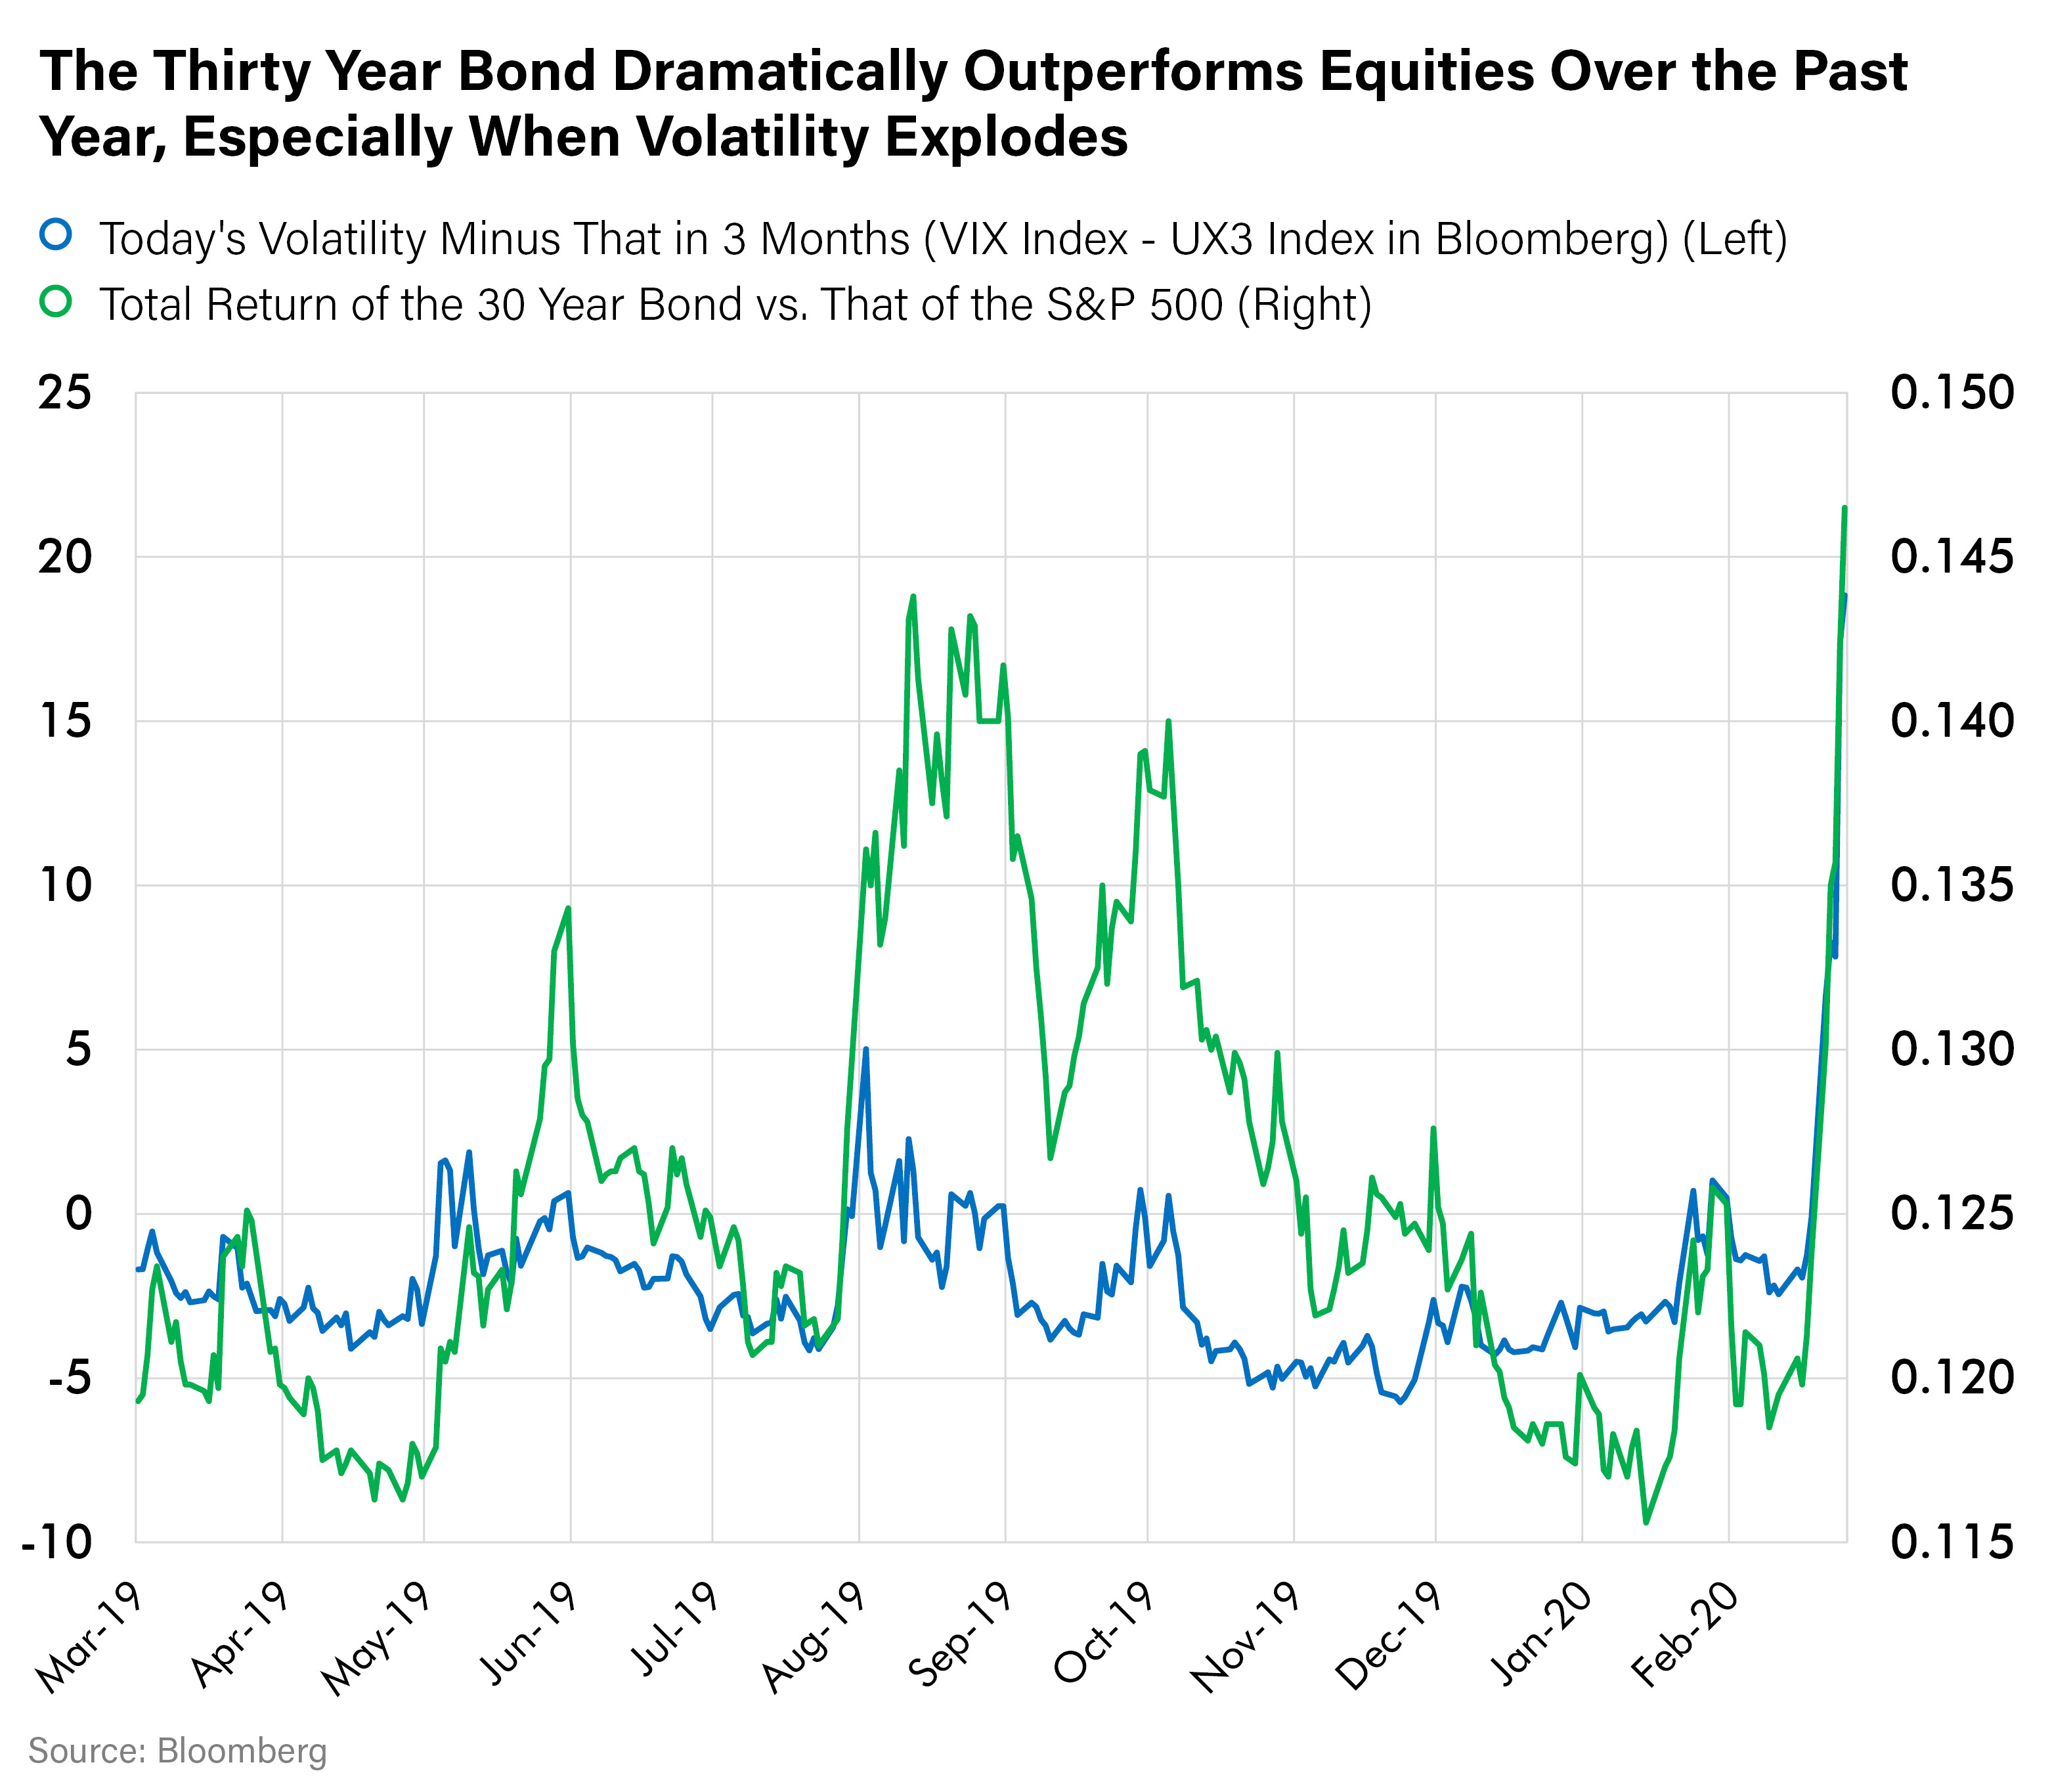 The Thirty Year Bond Dramatically Outperforms Equities Over the Past Year